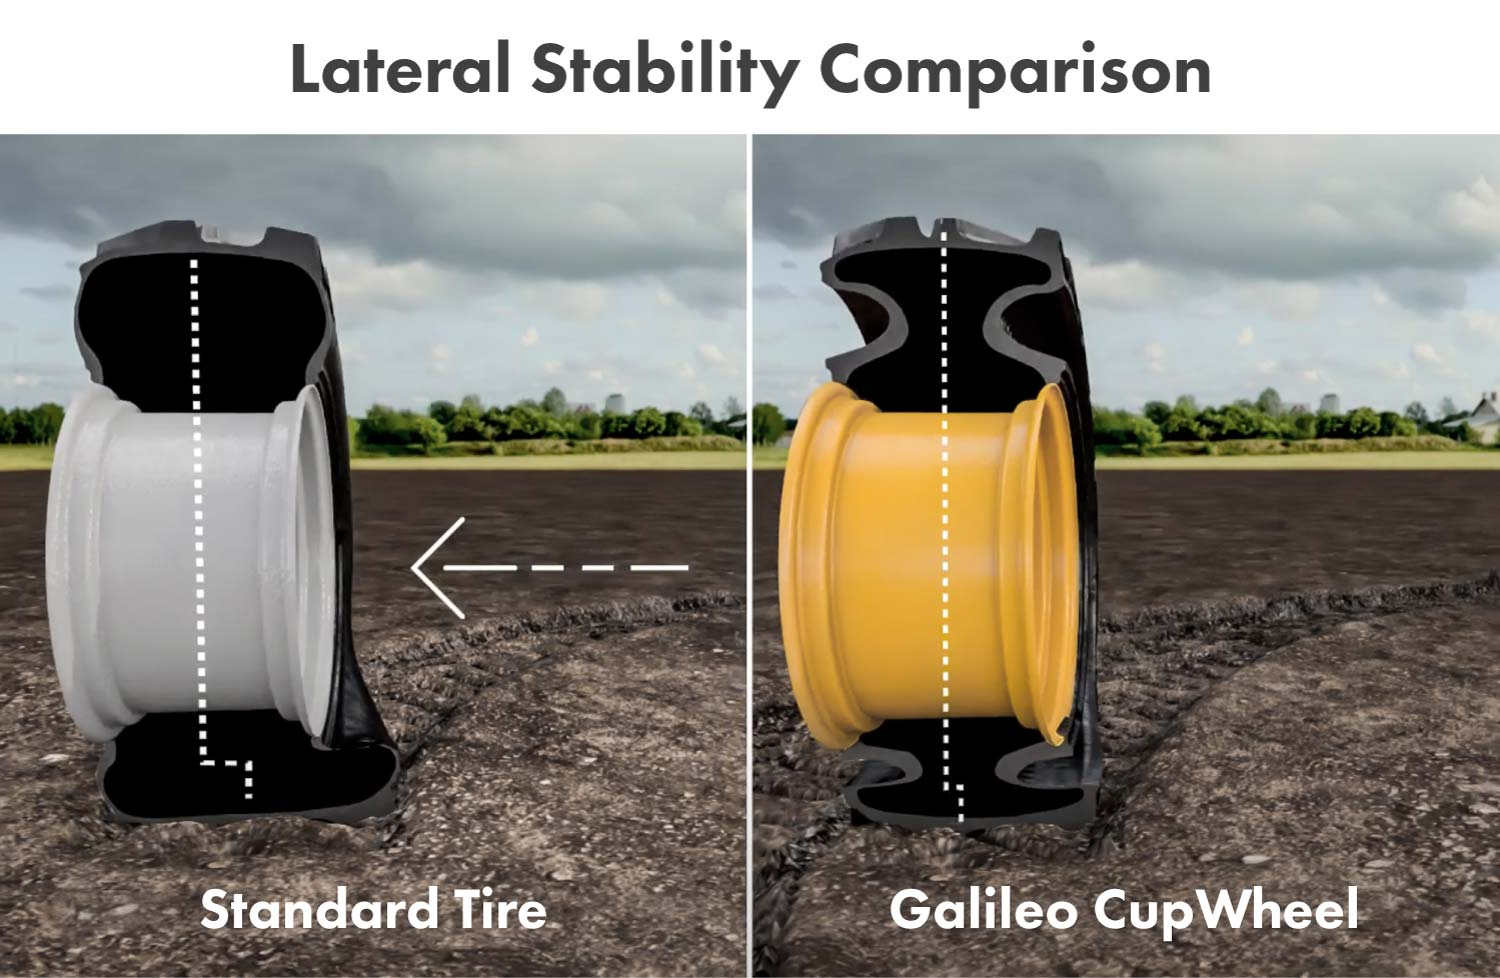 The Galileo CupWheel provides better lateral stability over standard radial tires for improved handling and stability on slopes.